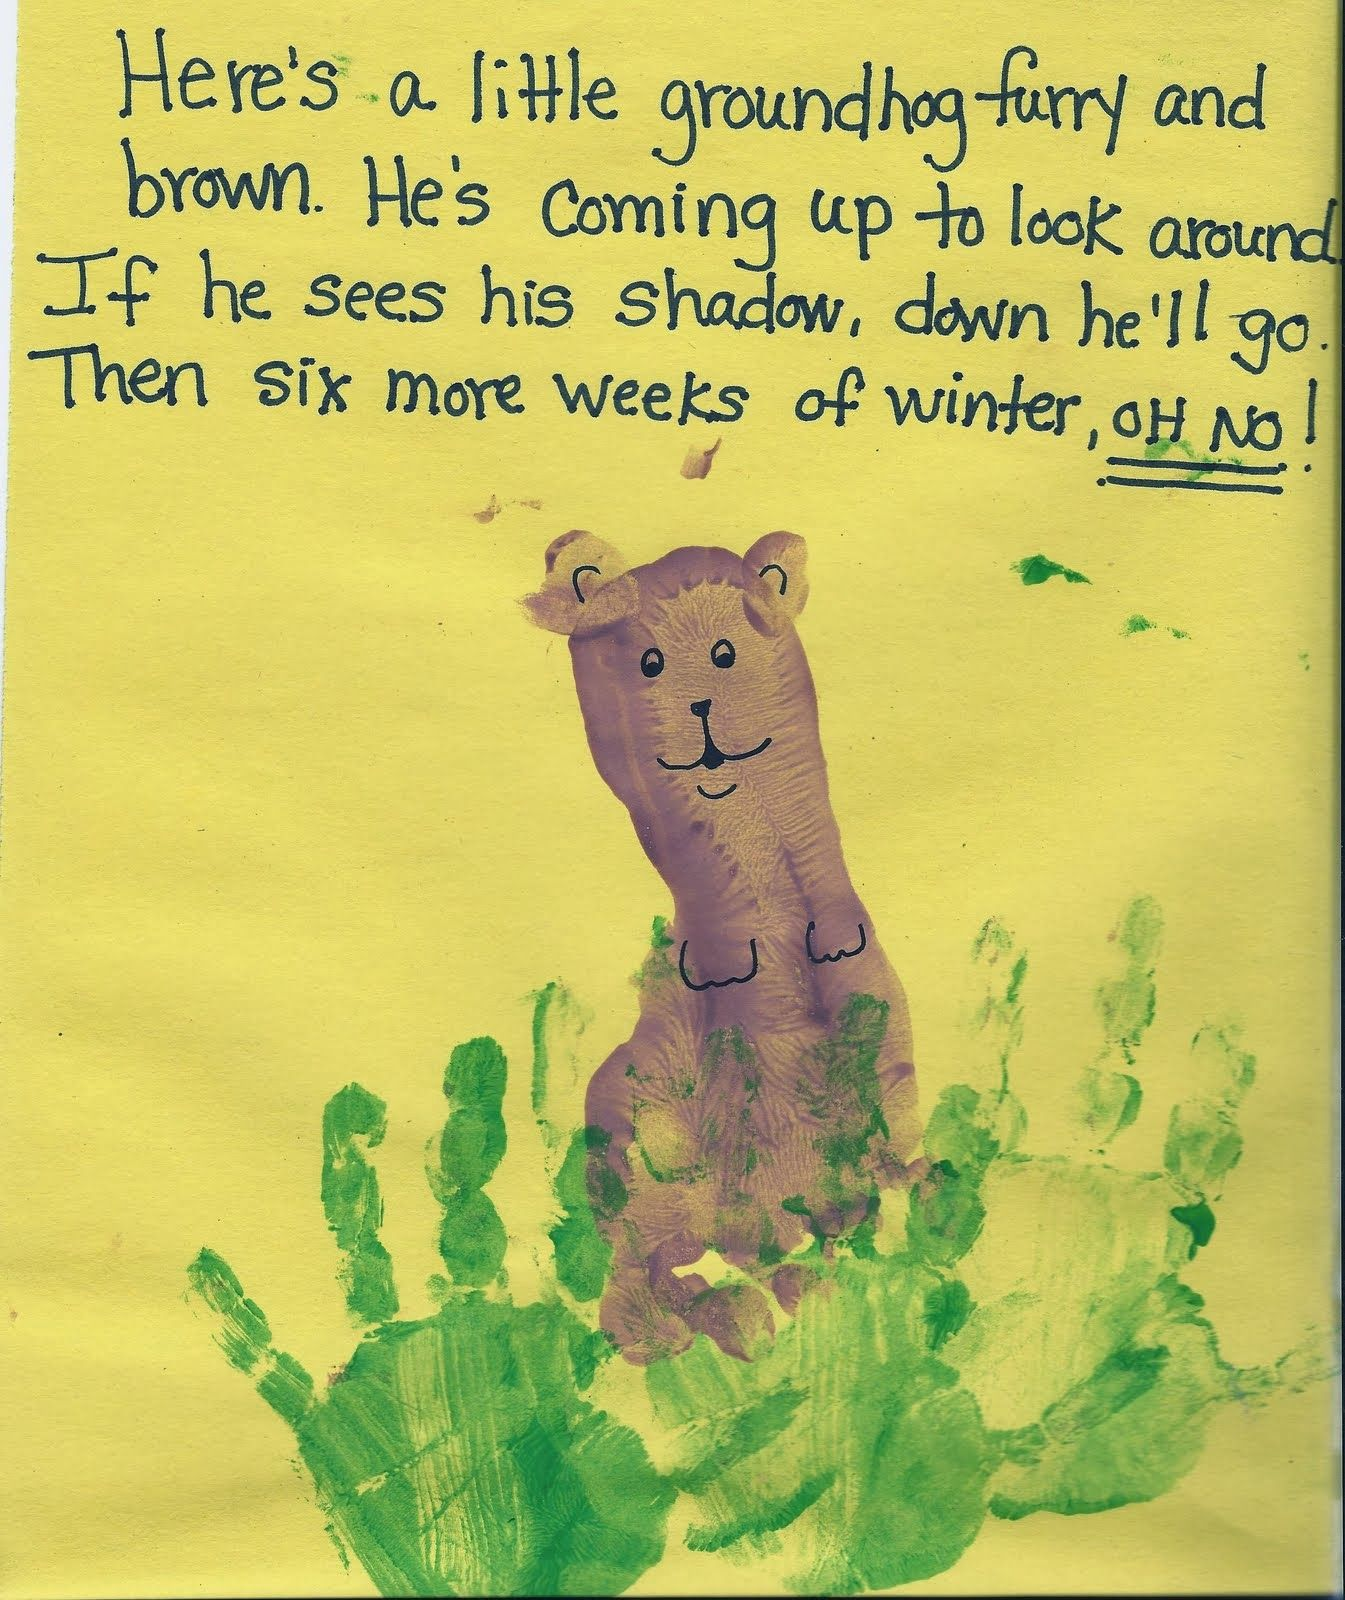 Groundhog Day Crafts For Kids With Images